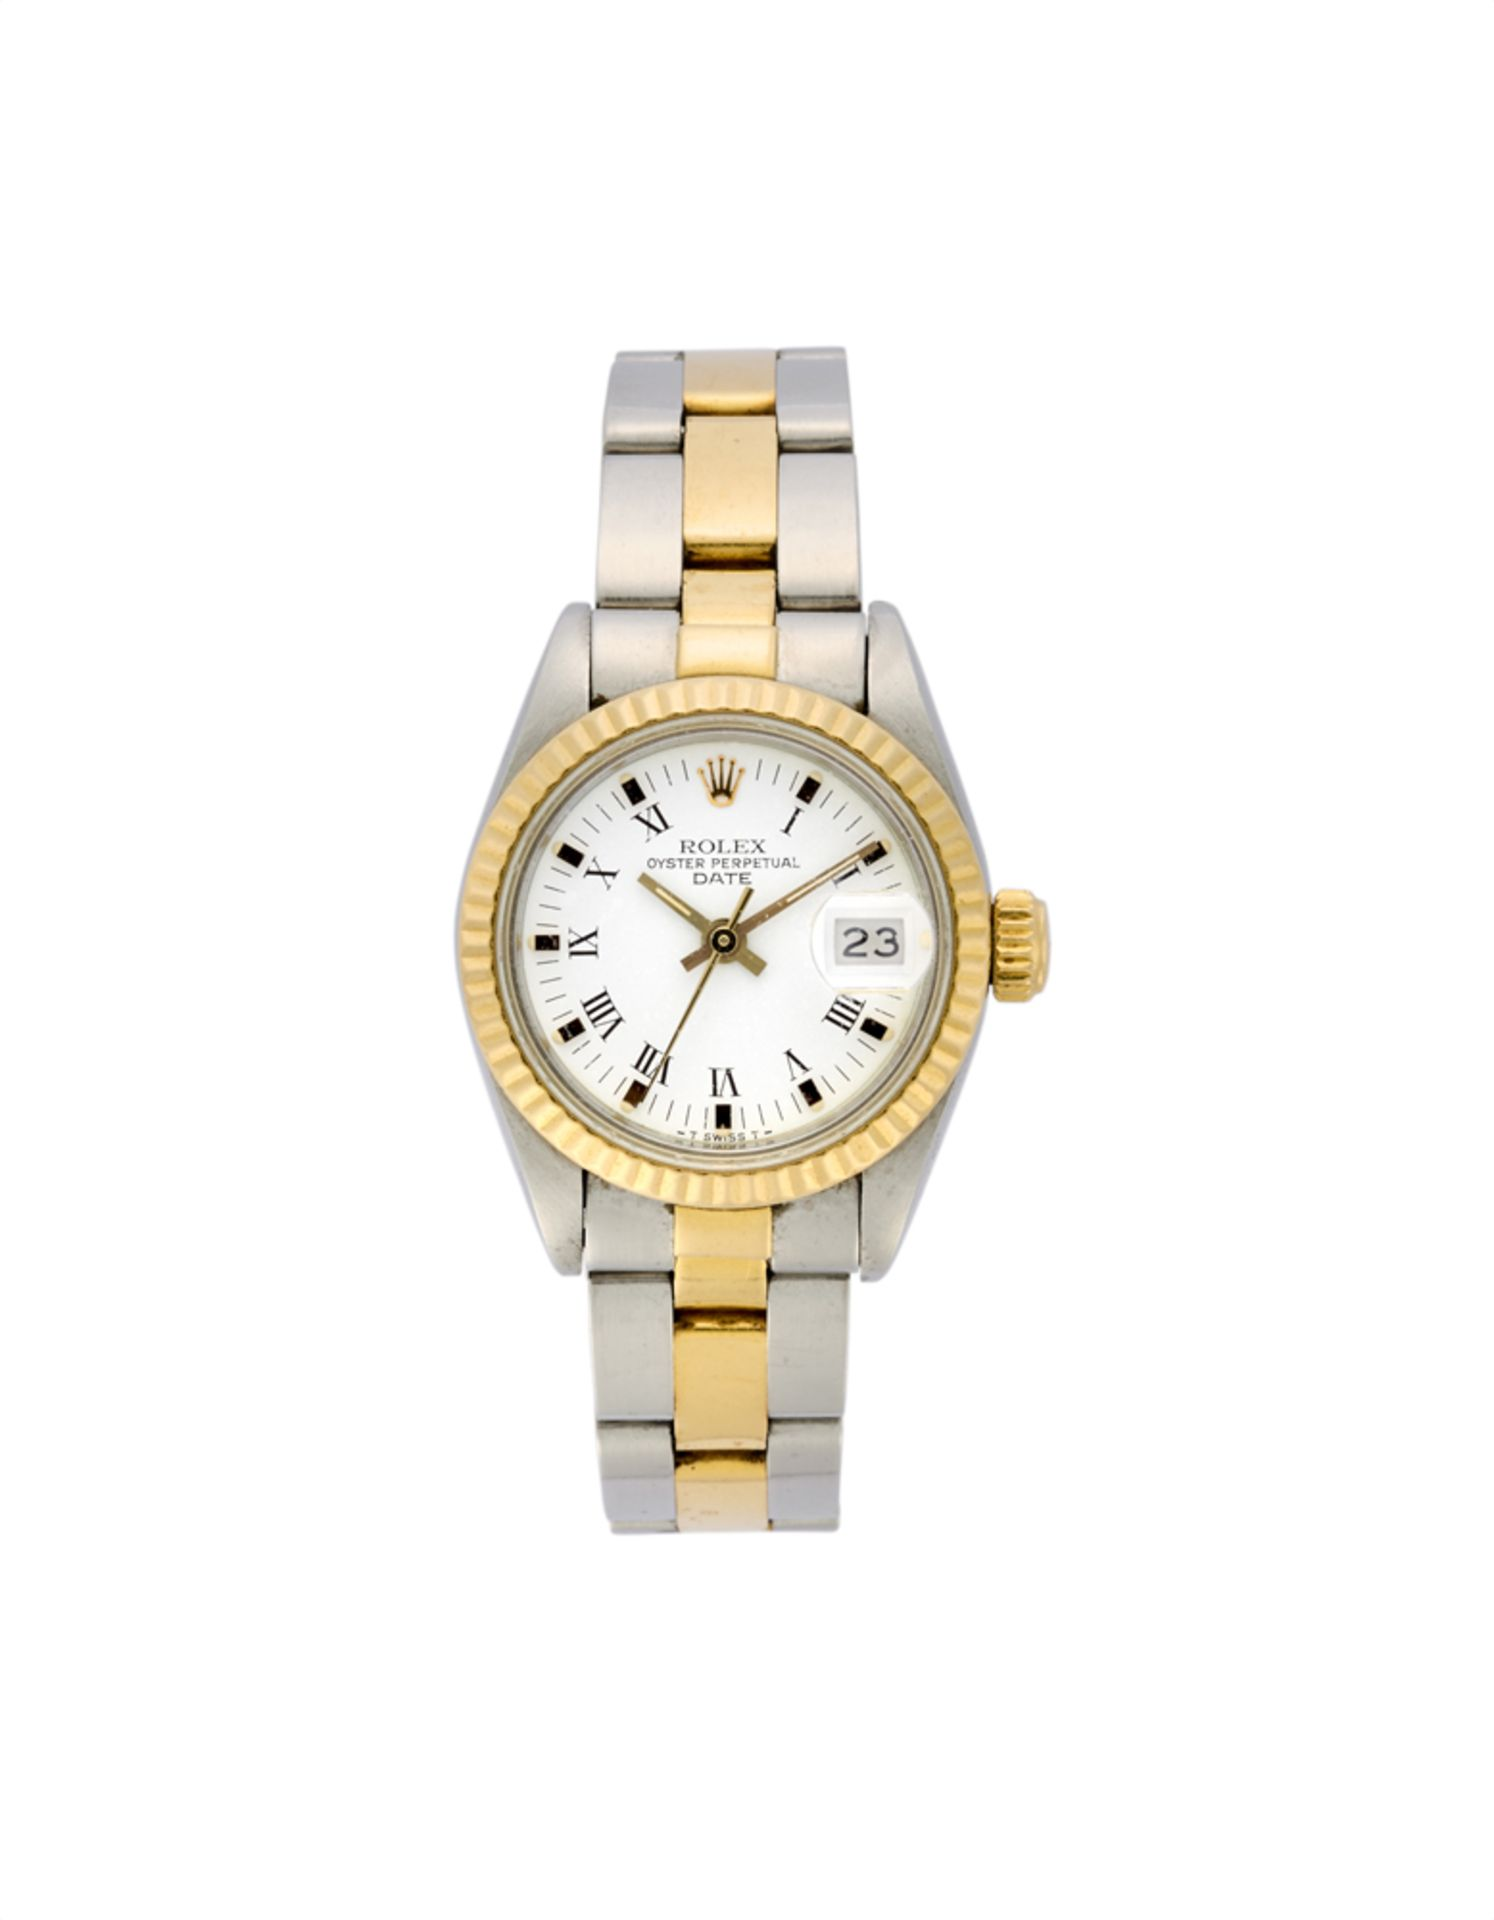 ROLEX DATEJUST Lady's steel and metal plated-gold wristwatch1980sDial, movement and case